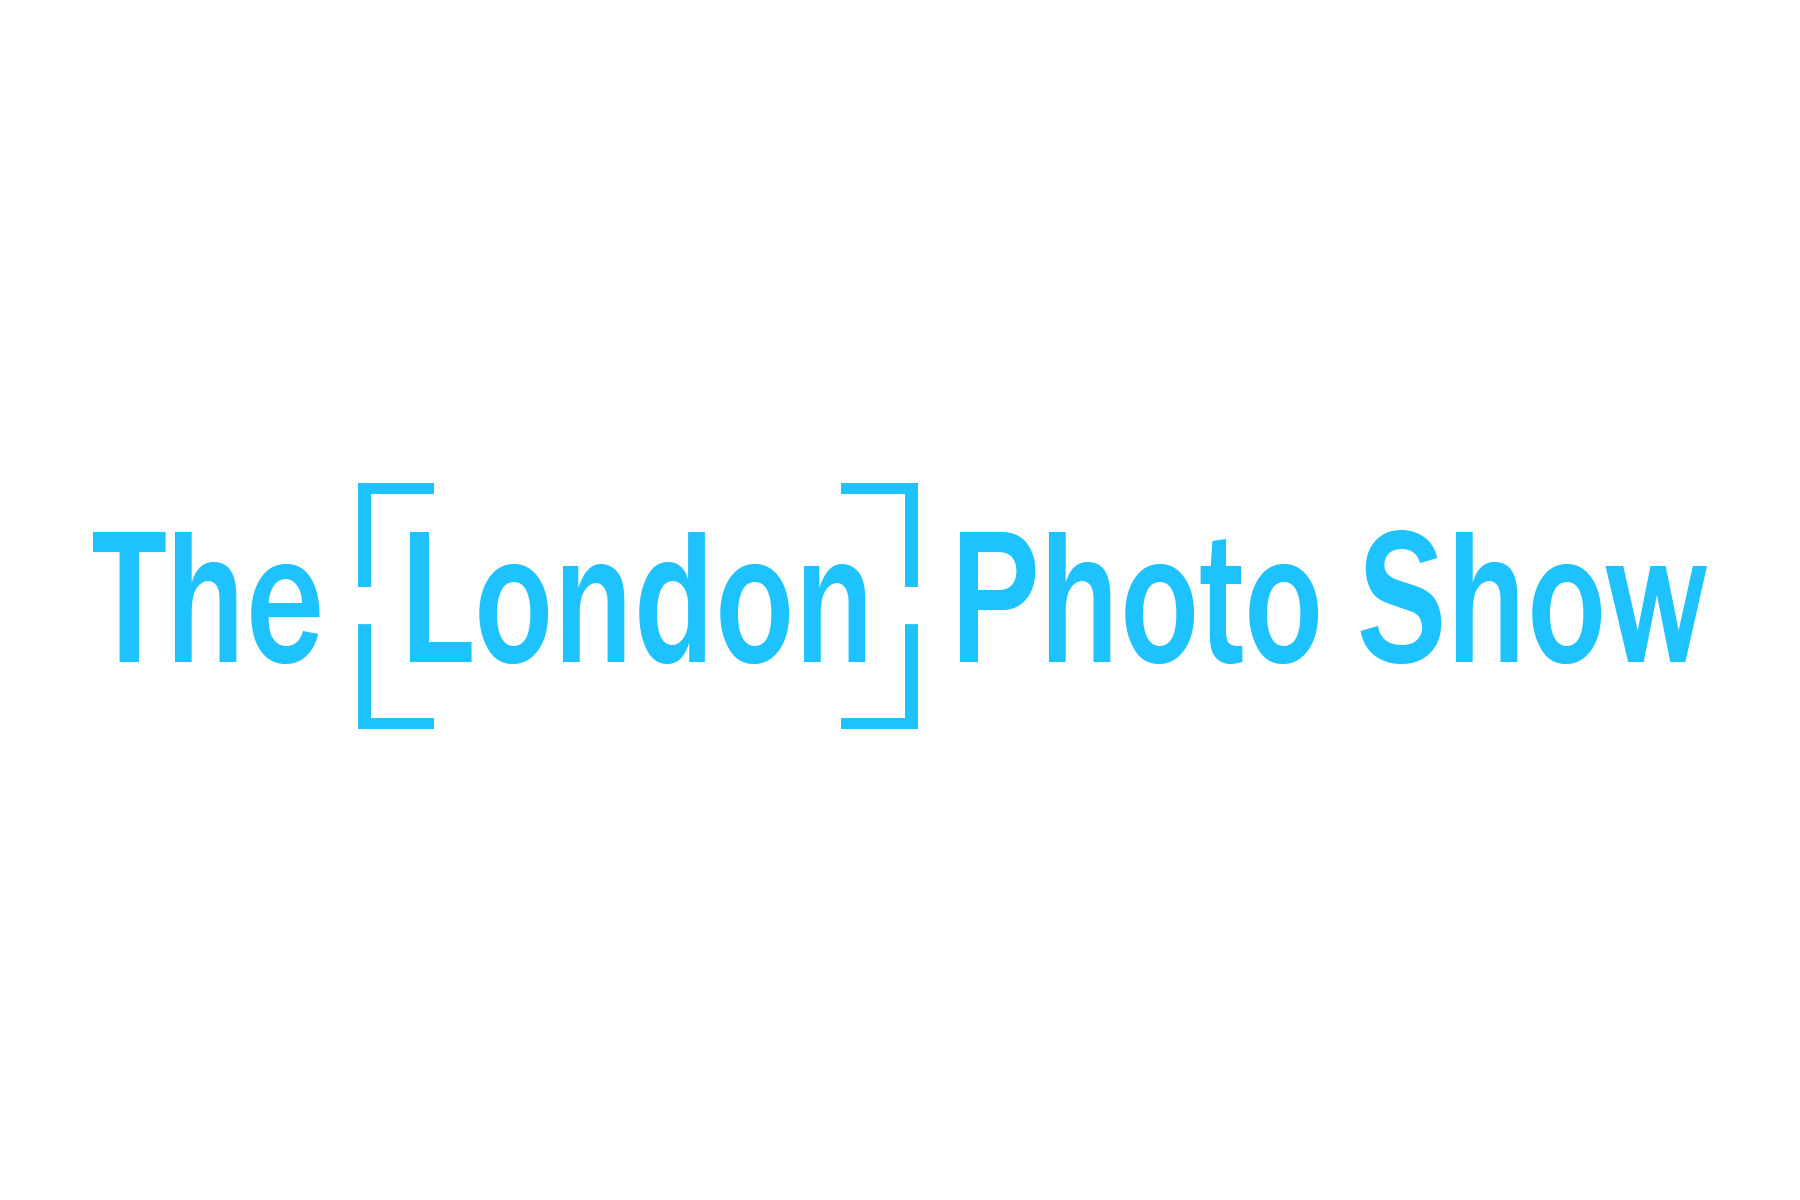 London Photo Show Competition & Exhibition